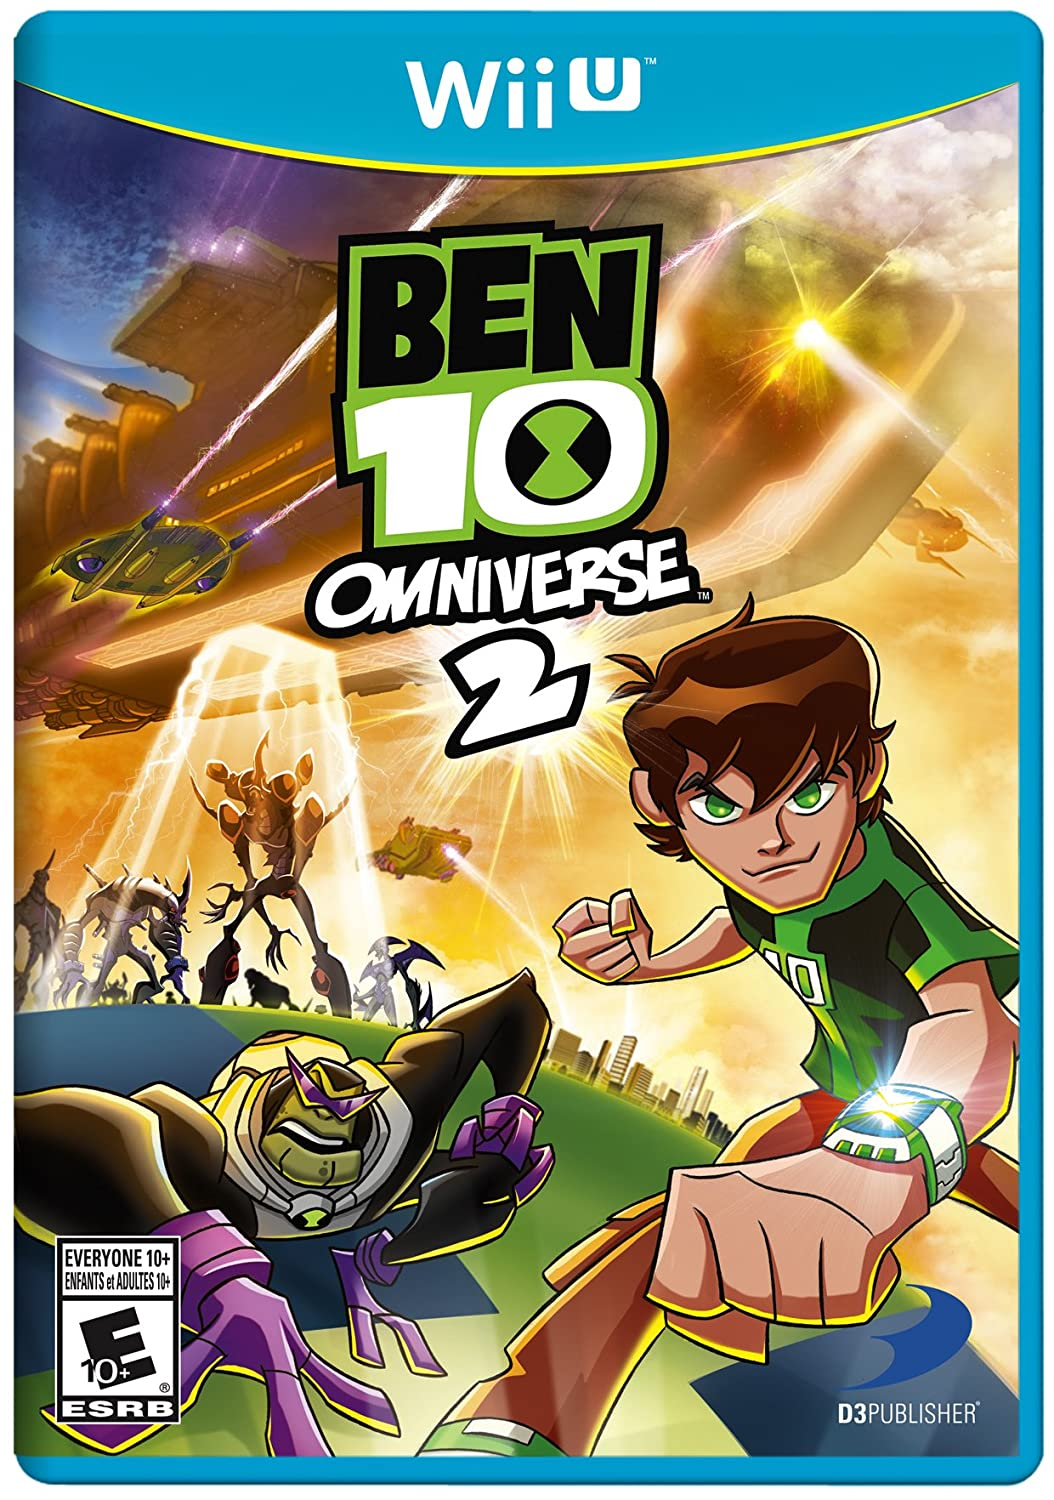 Ben 10 Omniverse sold out 2 U - Wii Nintendo Jacksonville Mall